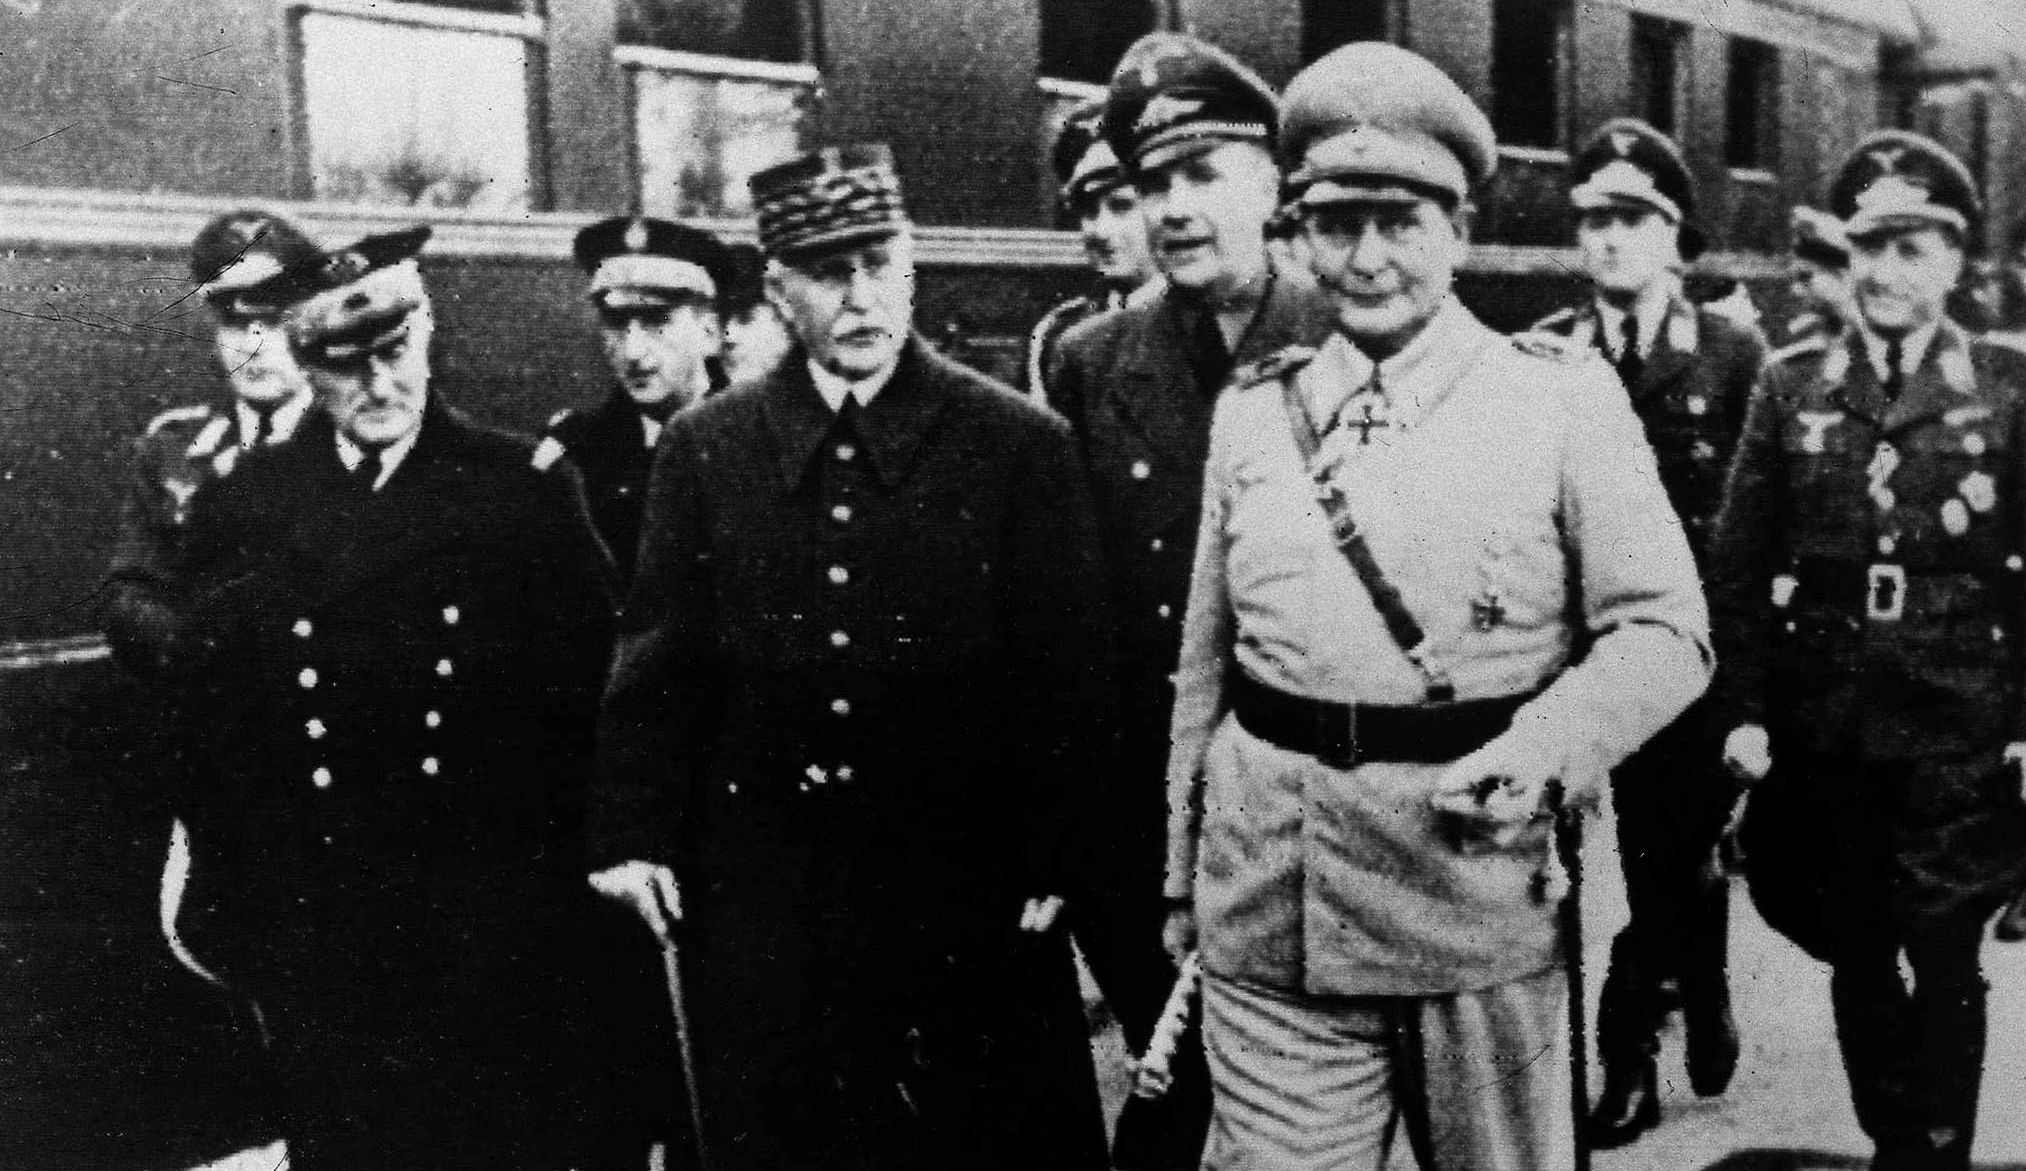 Admiral Jean-François Darlan, Marshal Phillipe Petain and Air Marshal Hermann Goering after a meeting between Vichy and Nazi leaders at which they discussed the handing over of bases in French North Africa to the Nazis. Popperfoto/Getty Images.